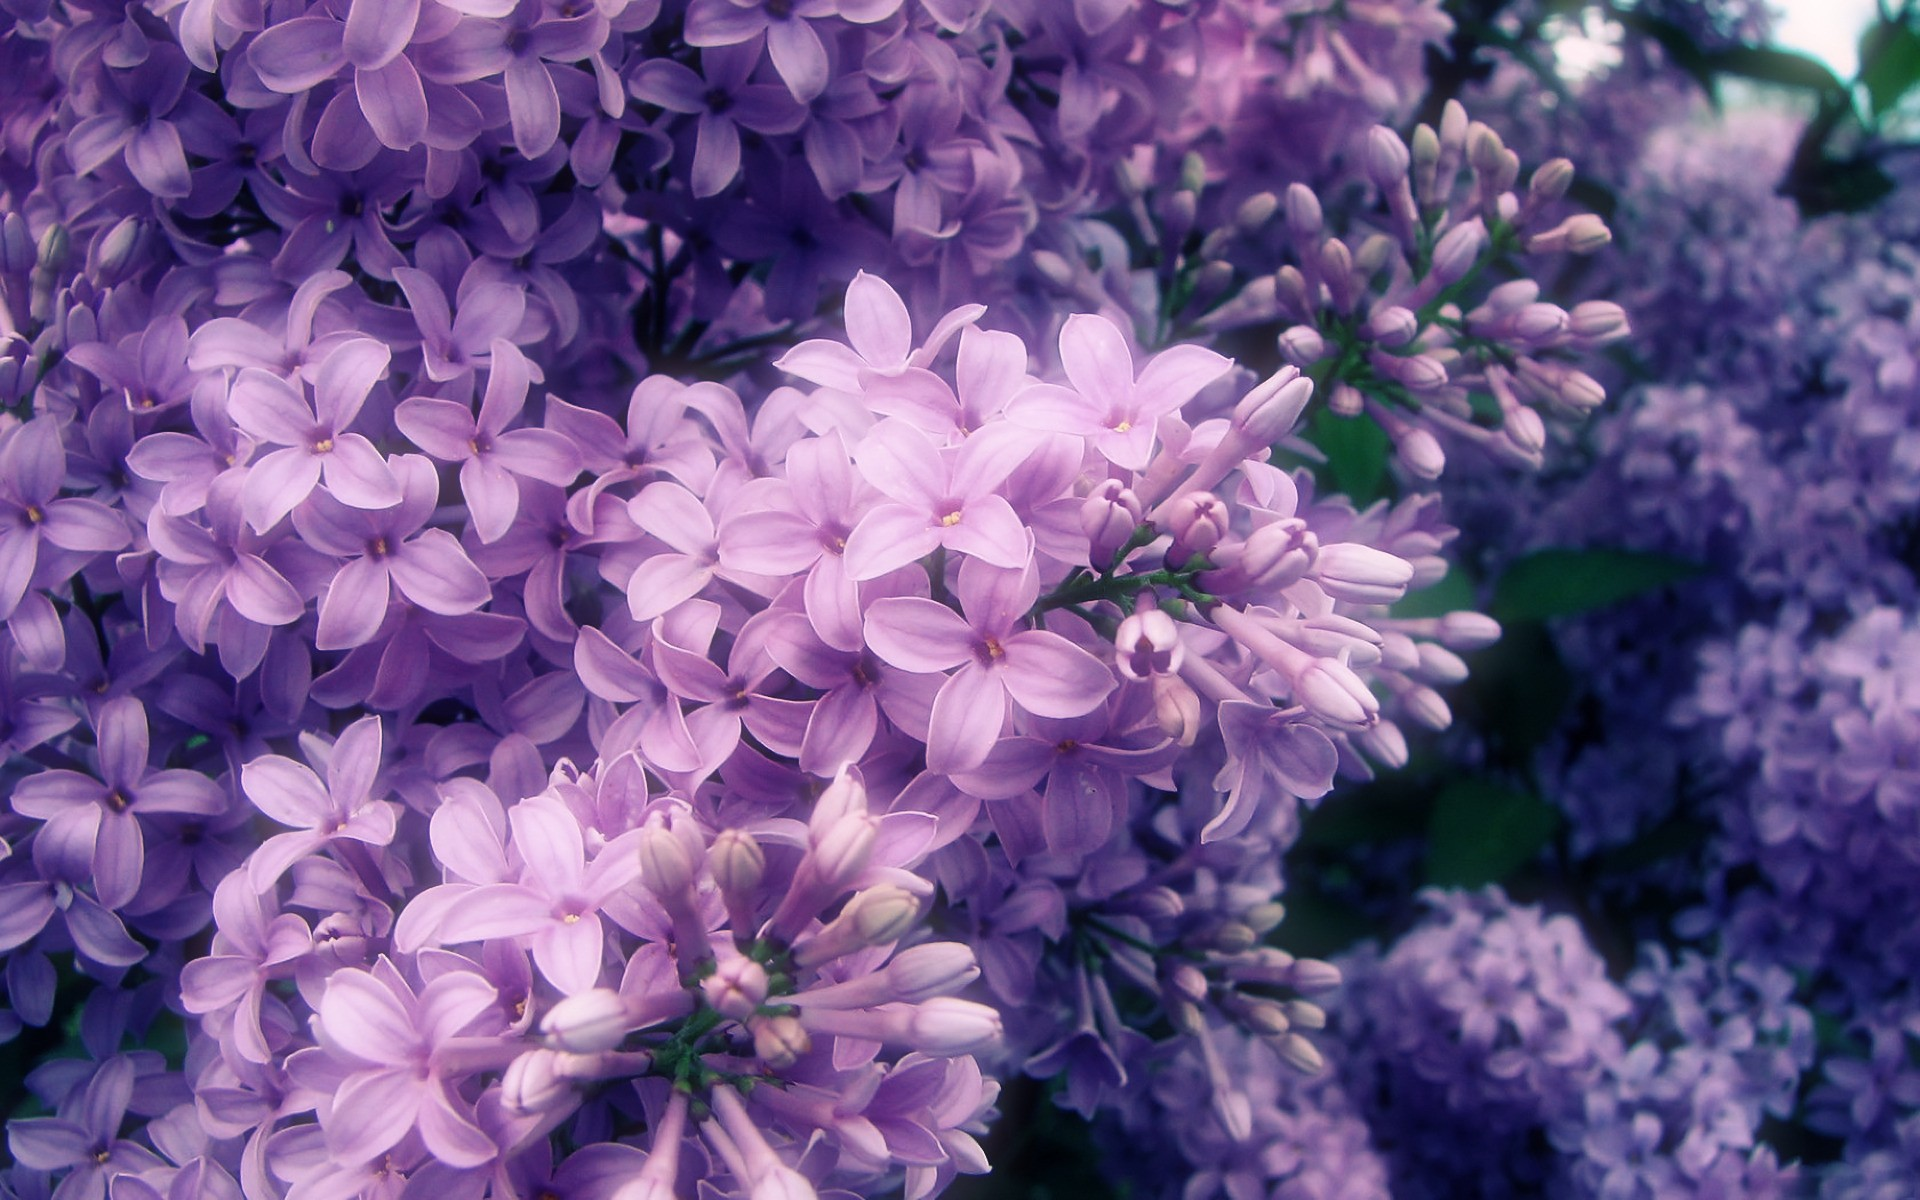 Light Purple Flowers Tumblr Purple Flowers Aesthetic 297189 Hd Wallpaper Backgrounds Download